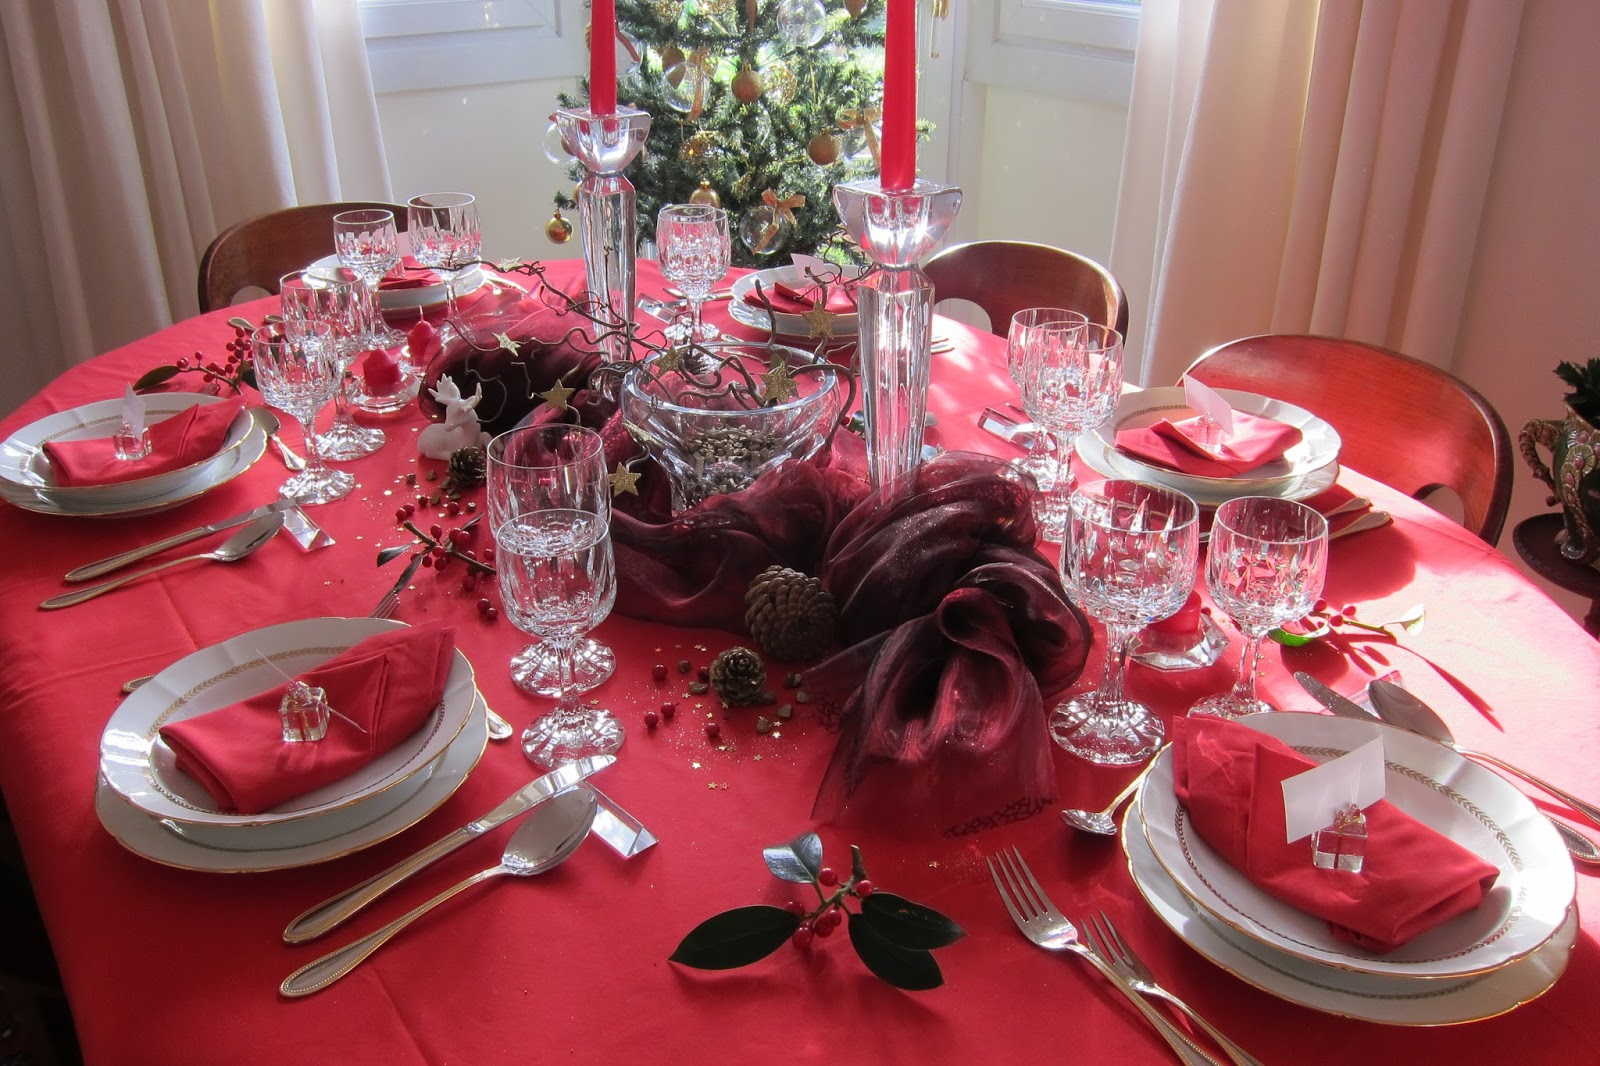 Decoration Table De Noel 2015 Id E Inspirante Pour La Conception De La Maison